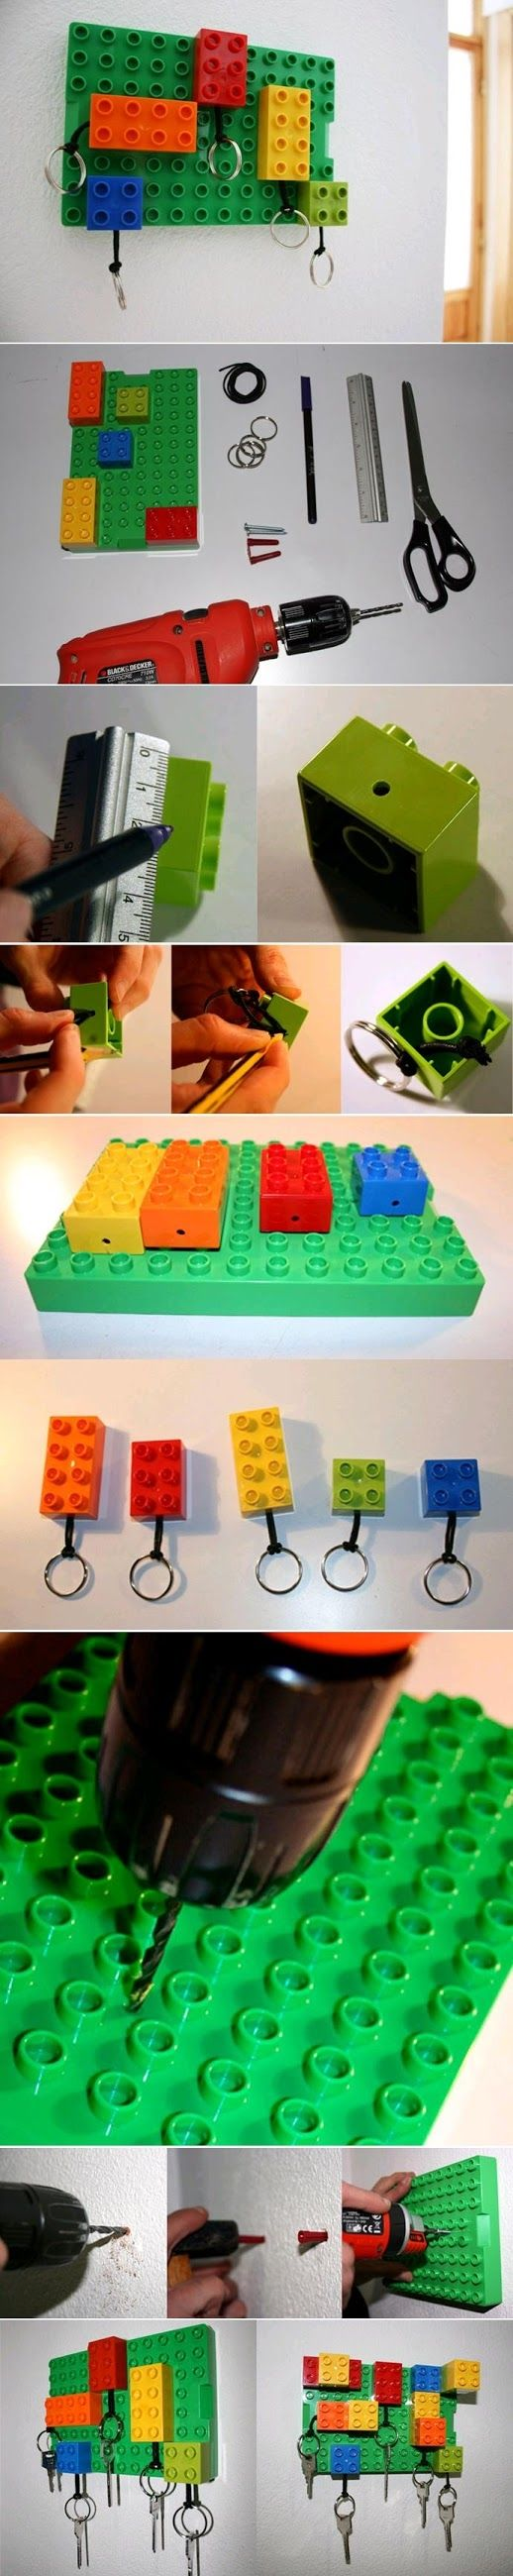 Lego key idea